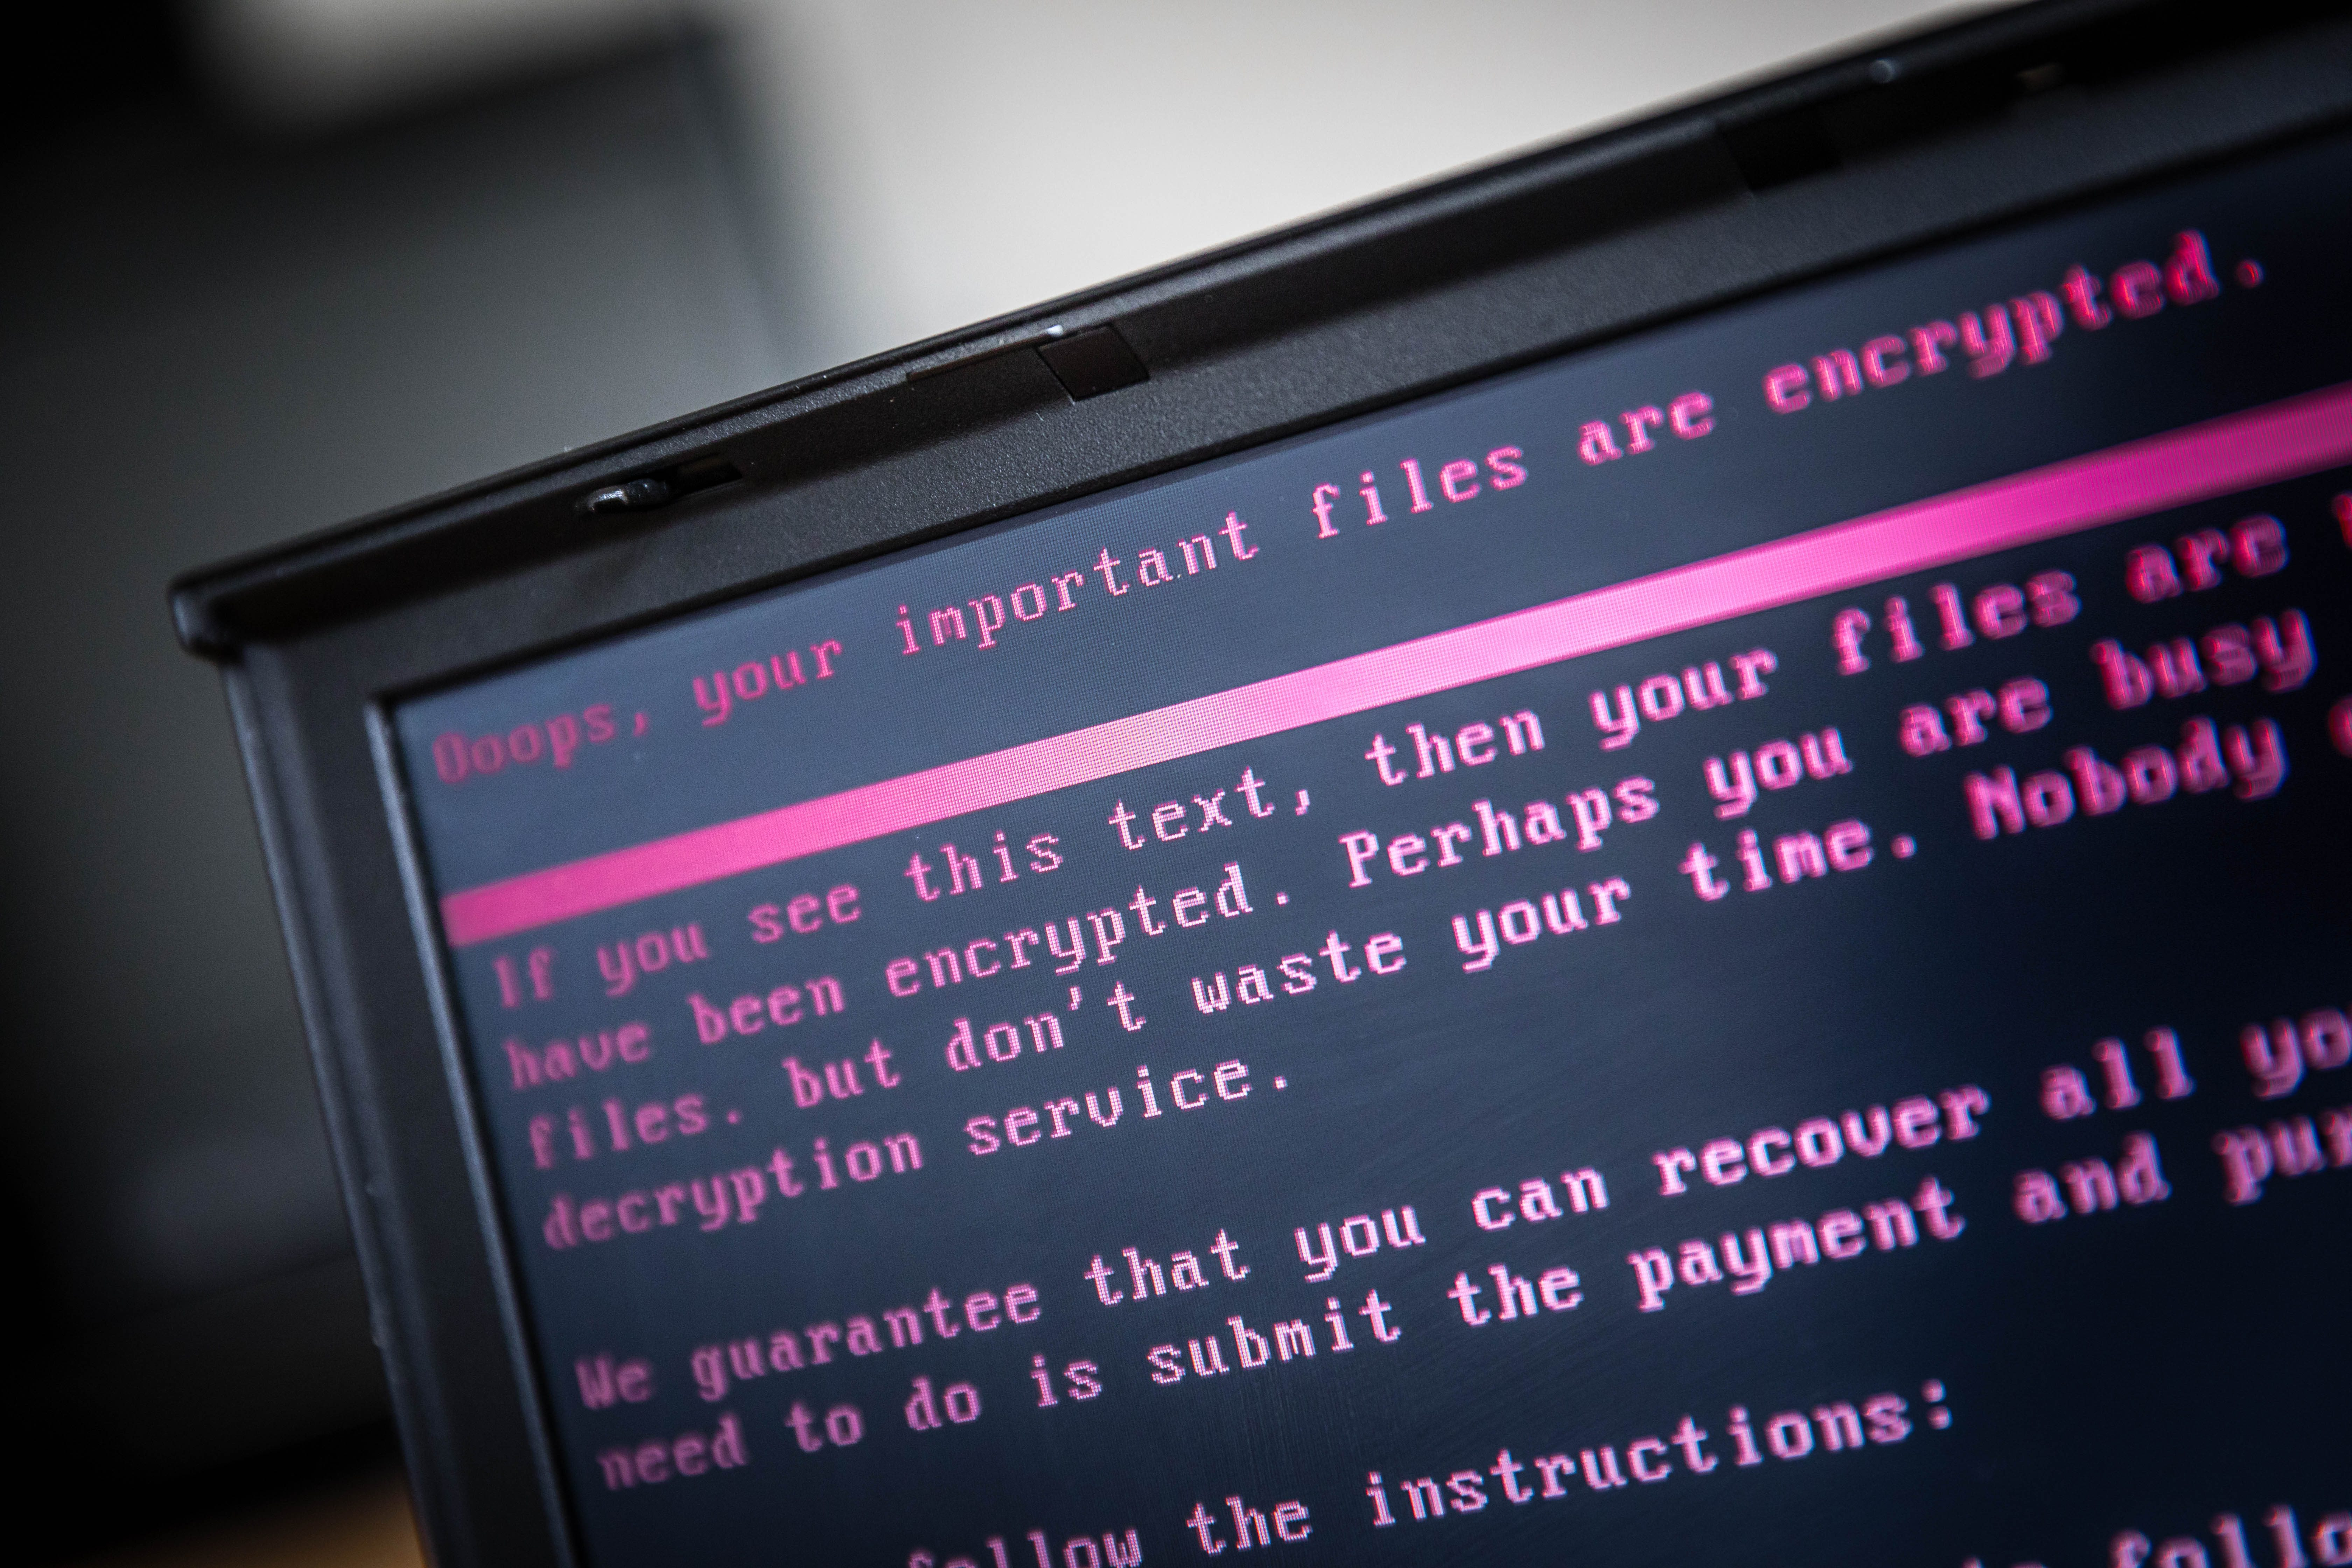 A laptop displays a message after being infected by a ransomware as part of a worldwide cyberattack on June 27, 2017 in Geldrop.